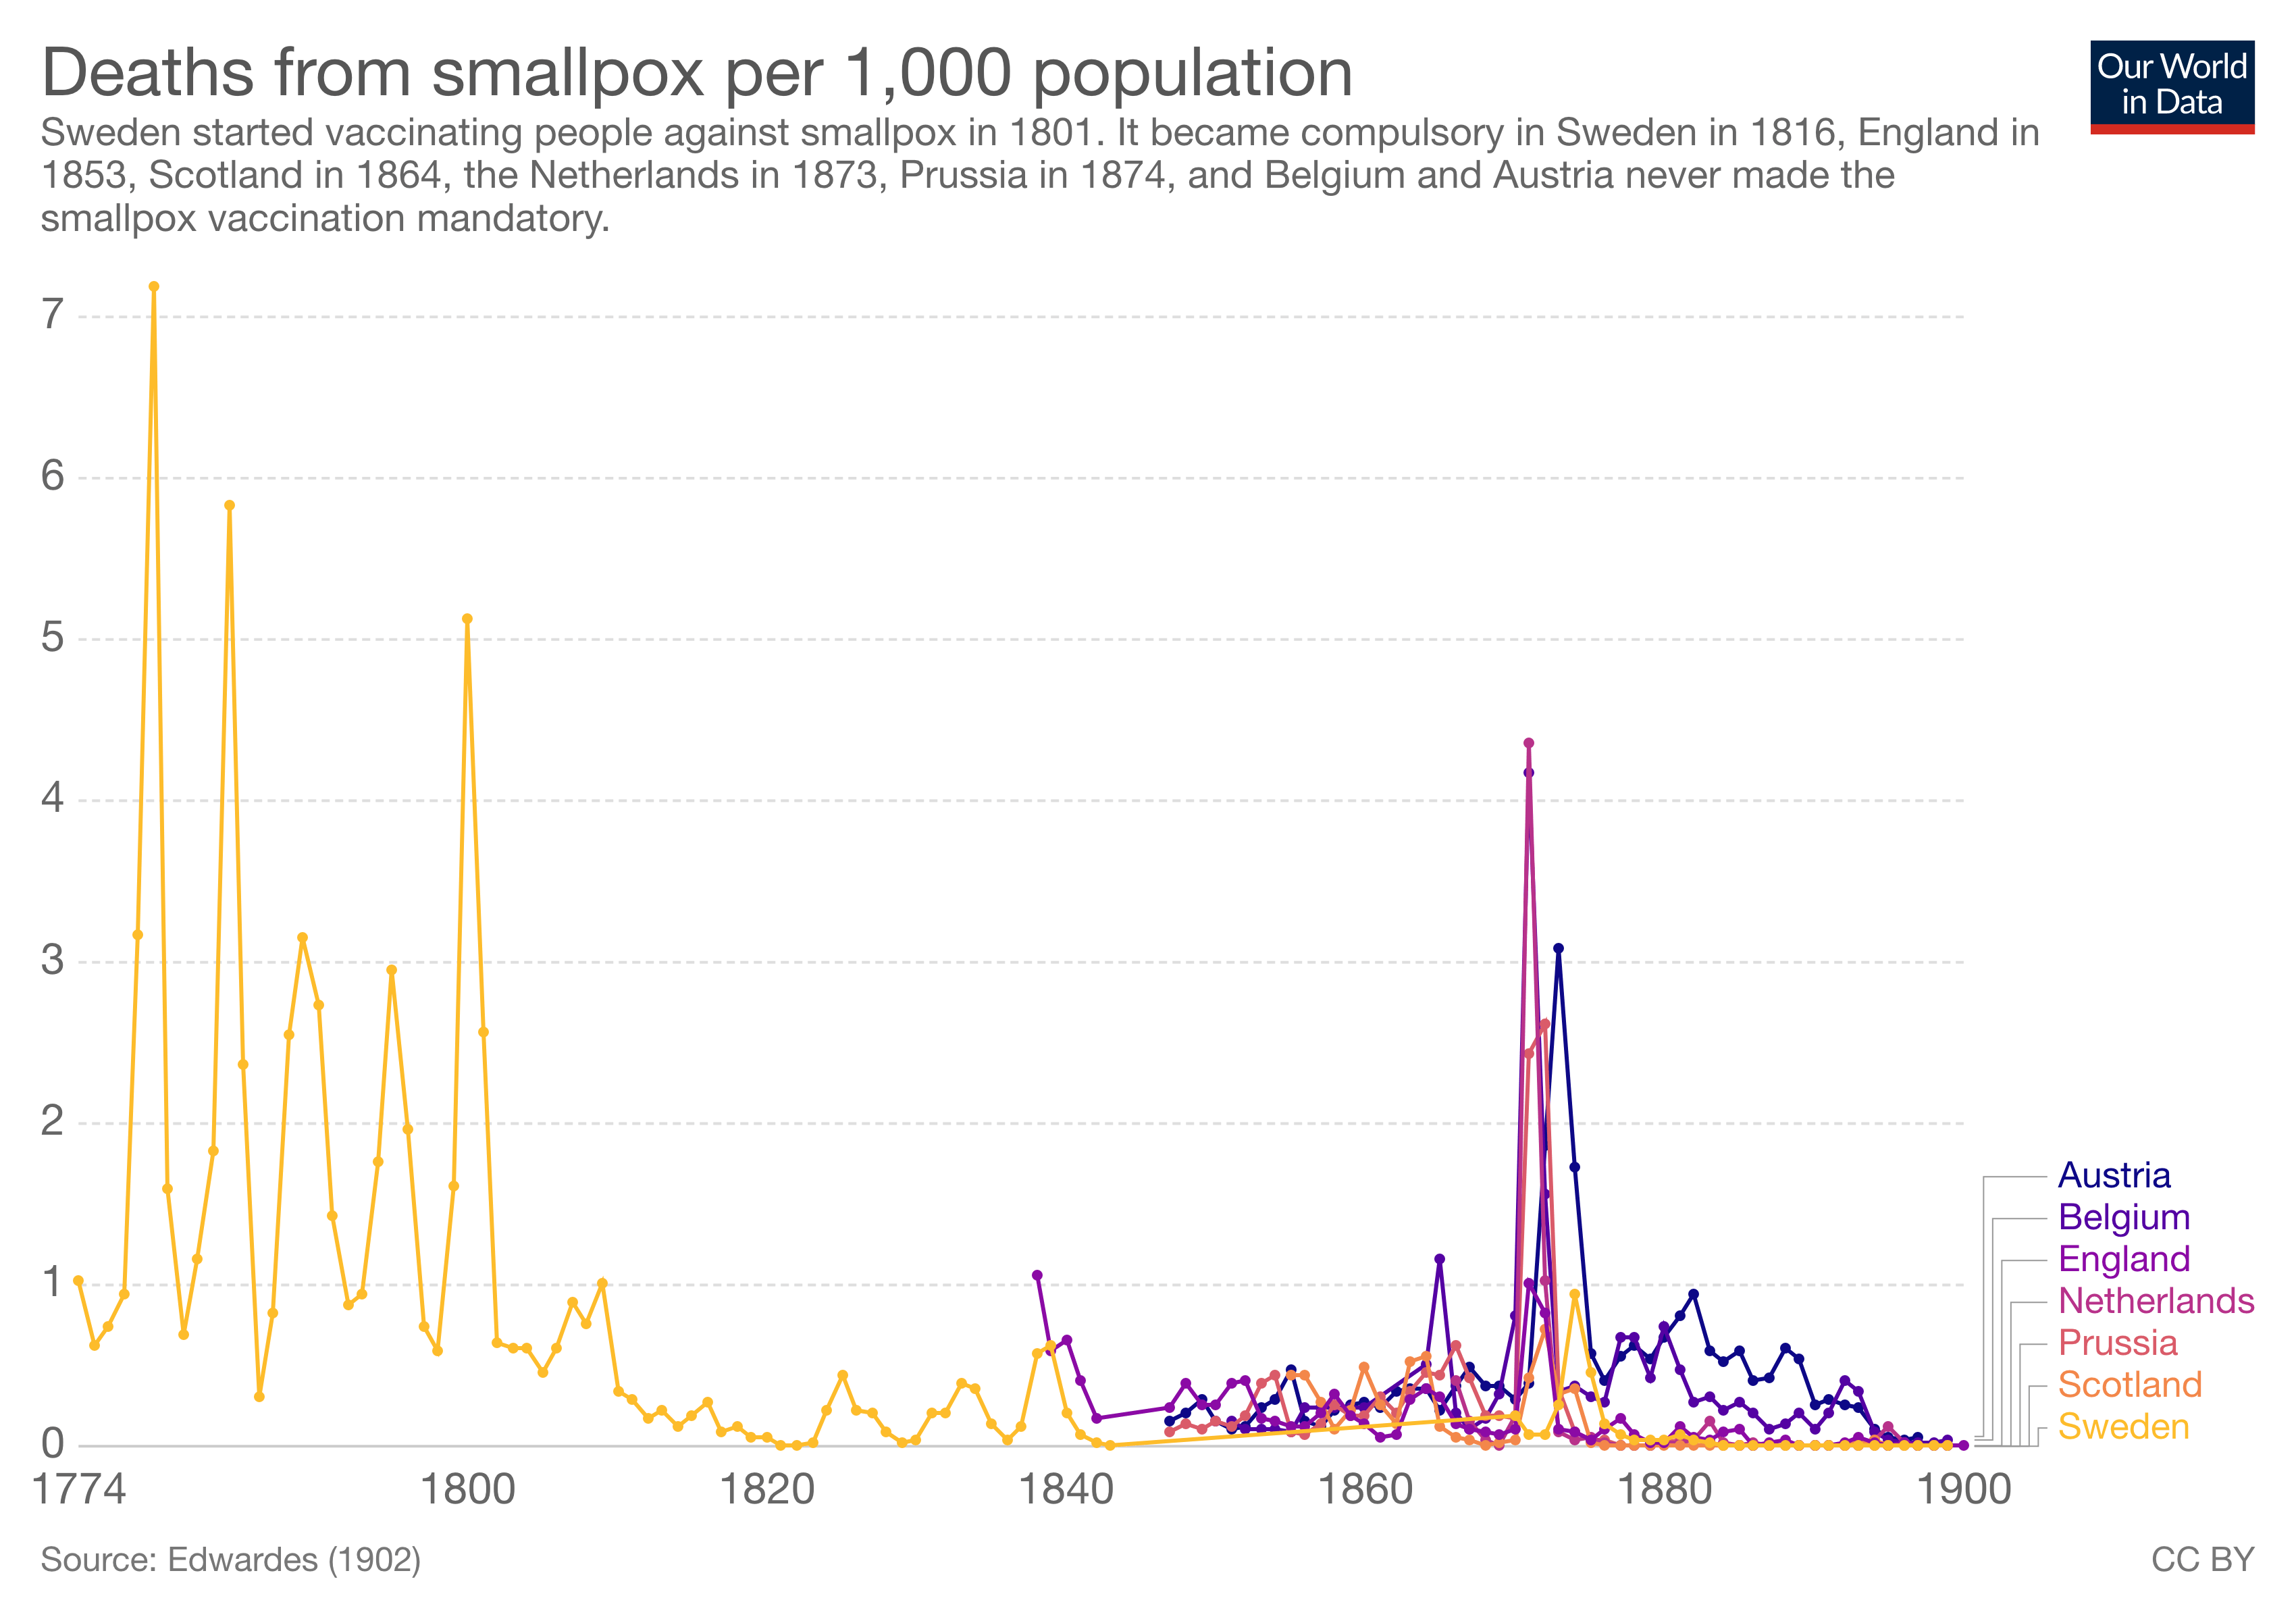 smallpox per capita deaths in Sweden and other countries from 1774 to 1900